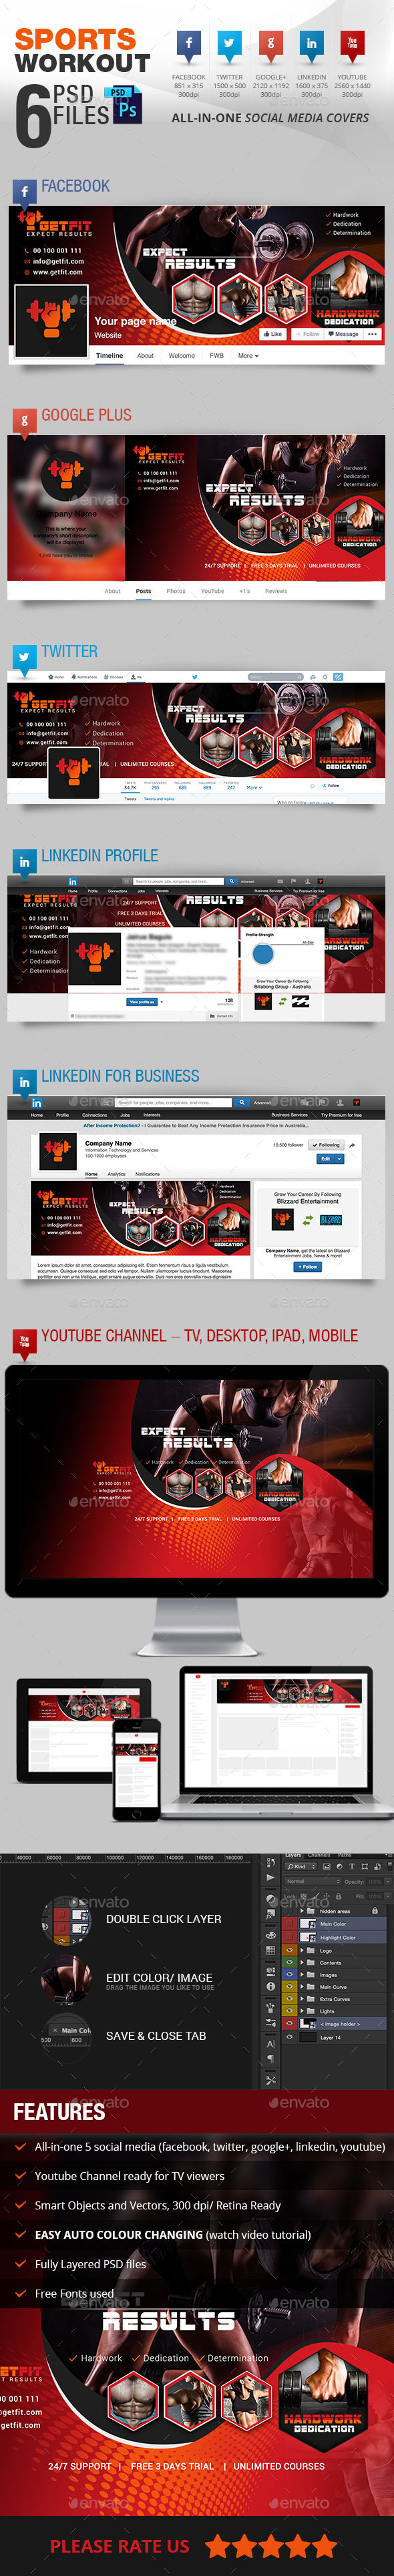 5 Social Media Cover Package for Workouts - Social Media Web Elements